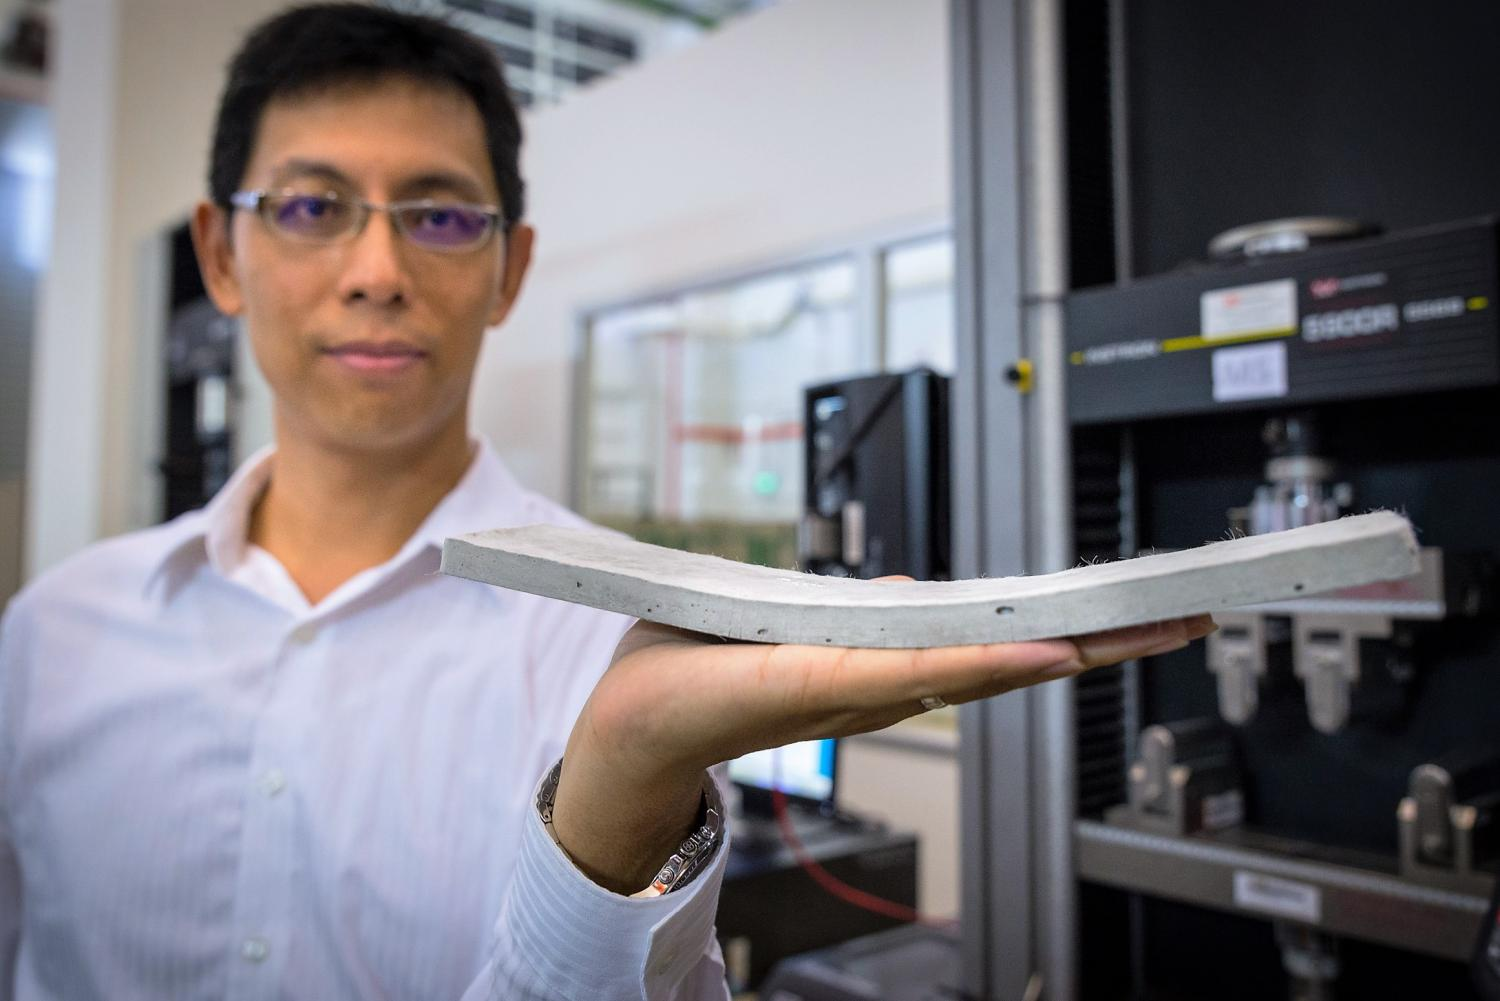 NTU-JTC scientists have developed flexible concrete that is stronger and more durable than normal 1